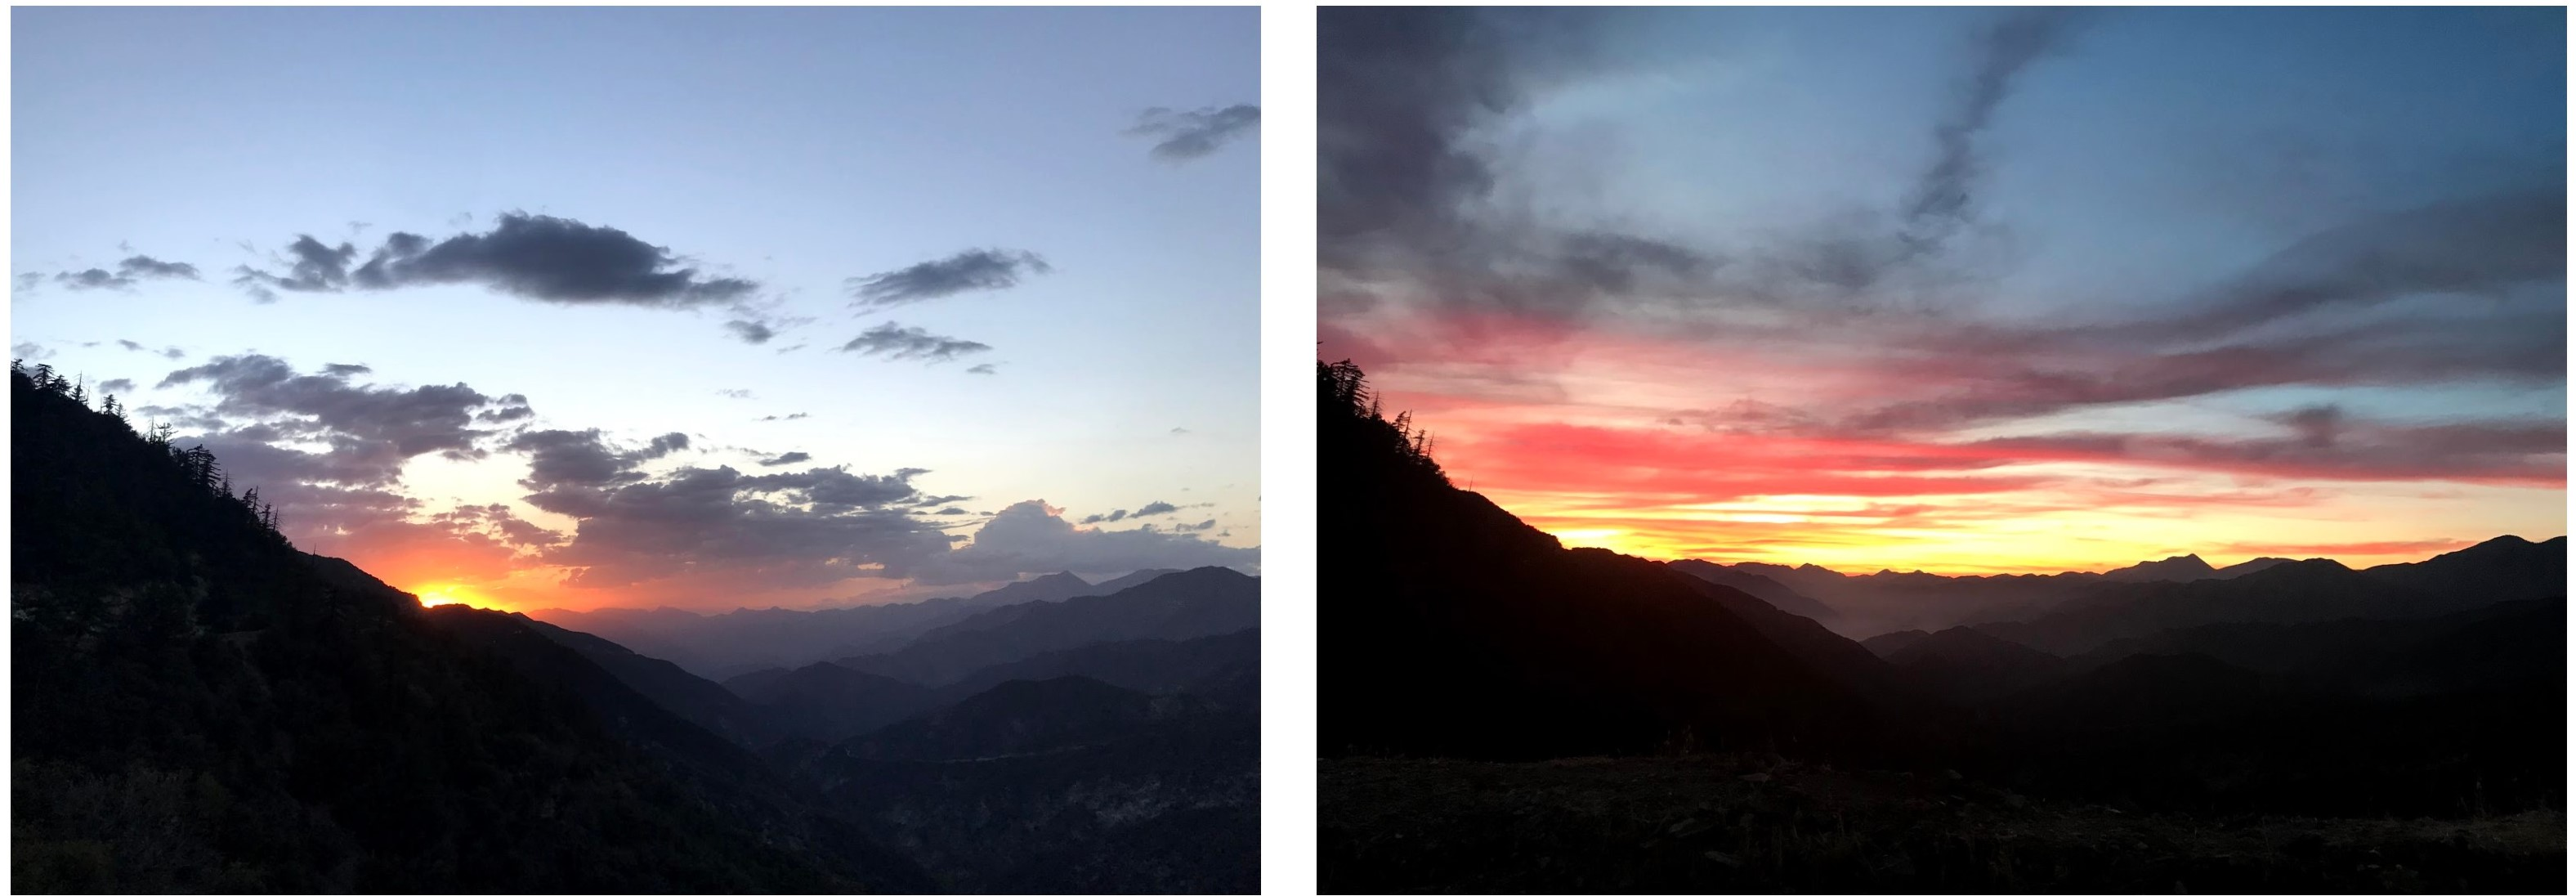 Two photos side by side of a sunset over a mountain range with clouds and an orange glow.